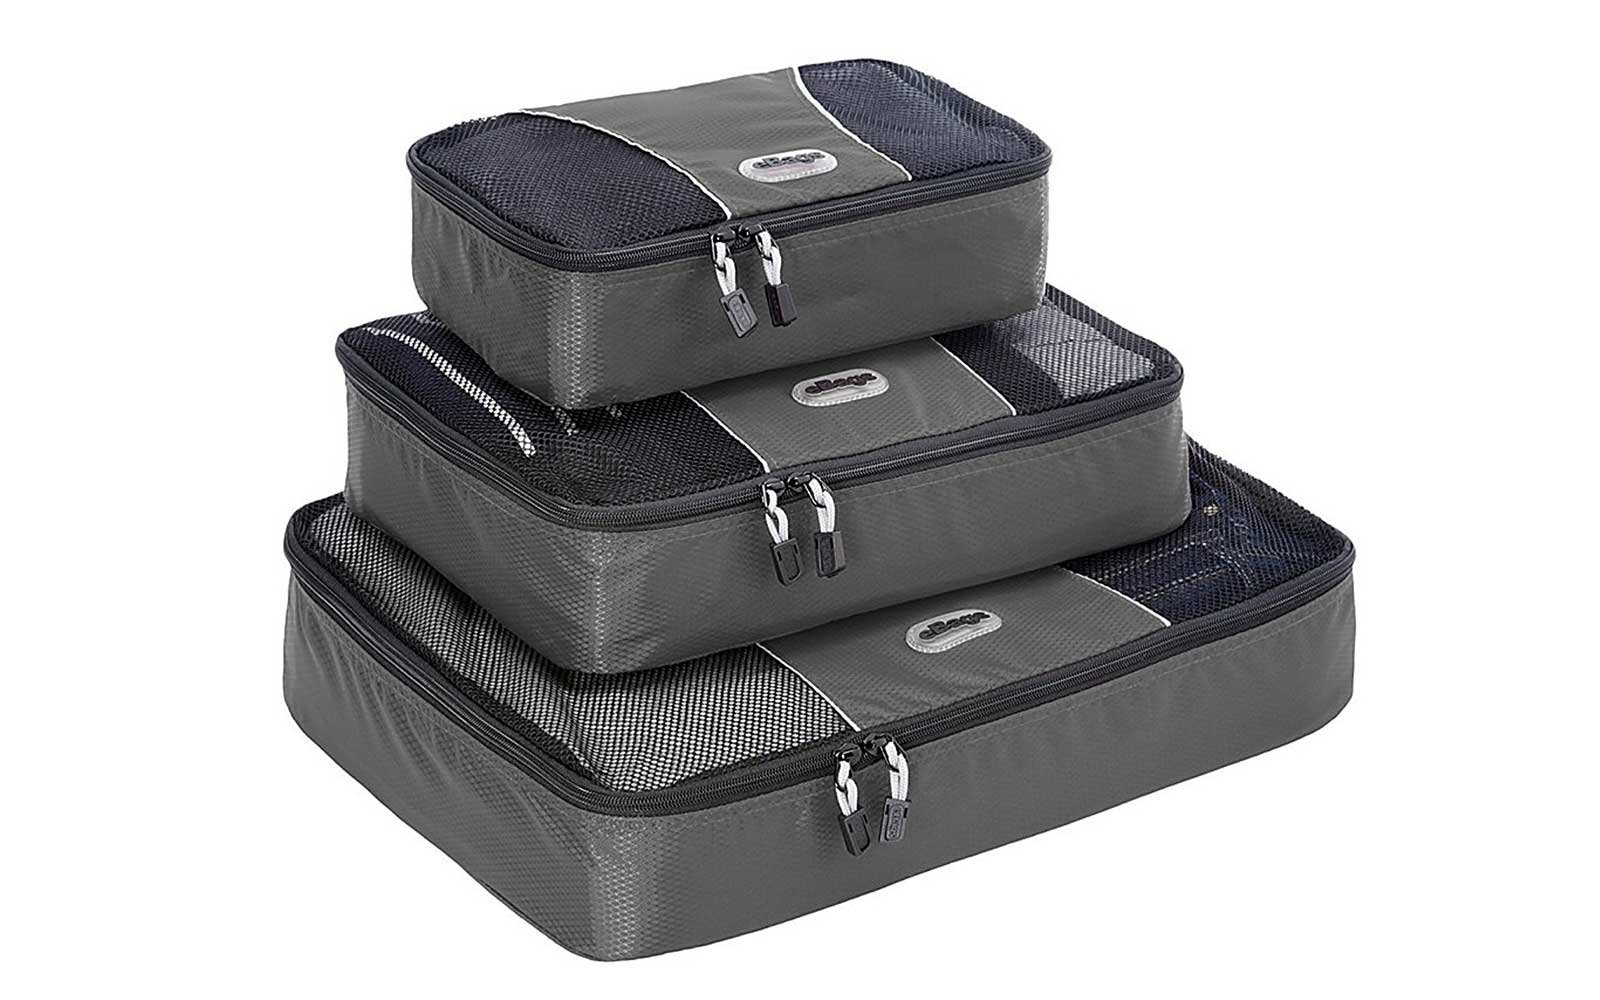 Packing Cubes to make your suitcase neater